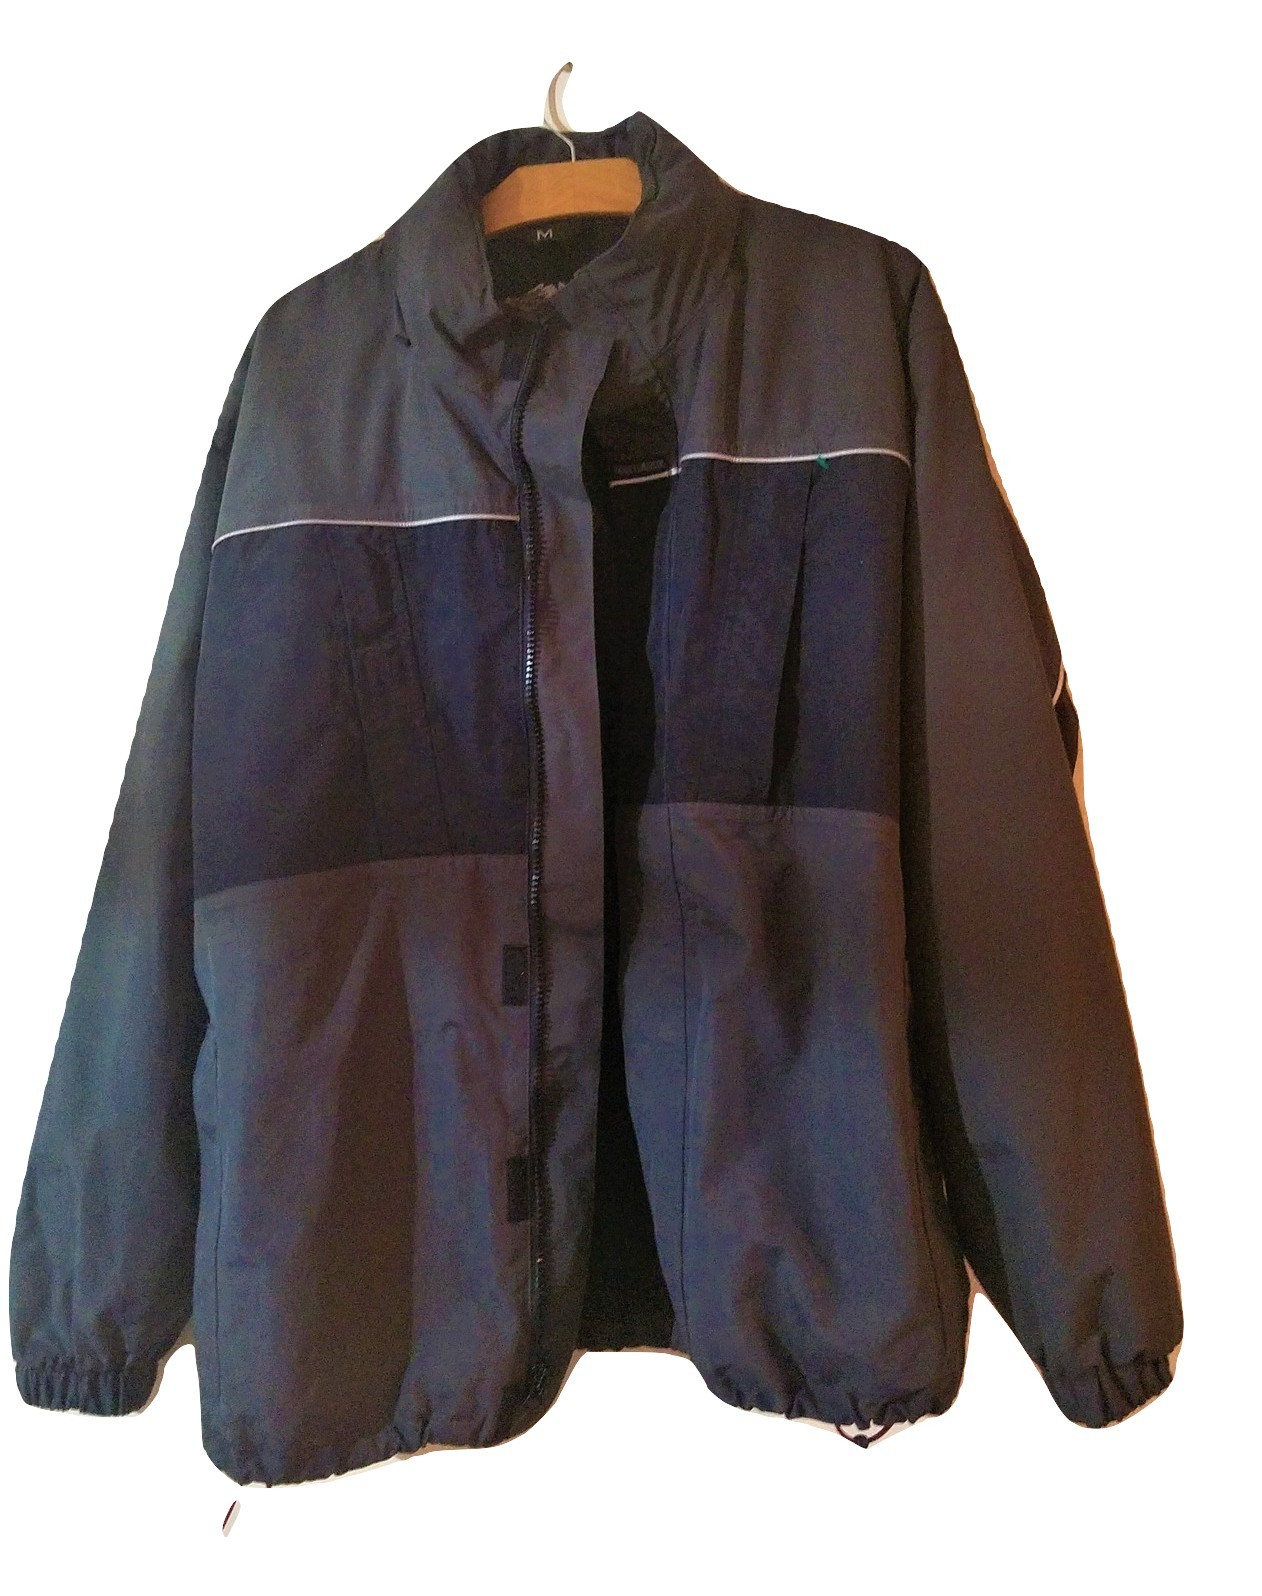 Primary image for Harley Davidson Waterproof riding jacket